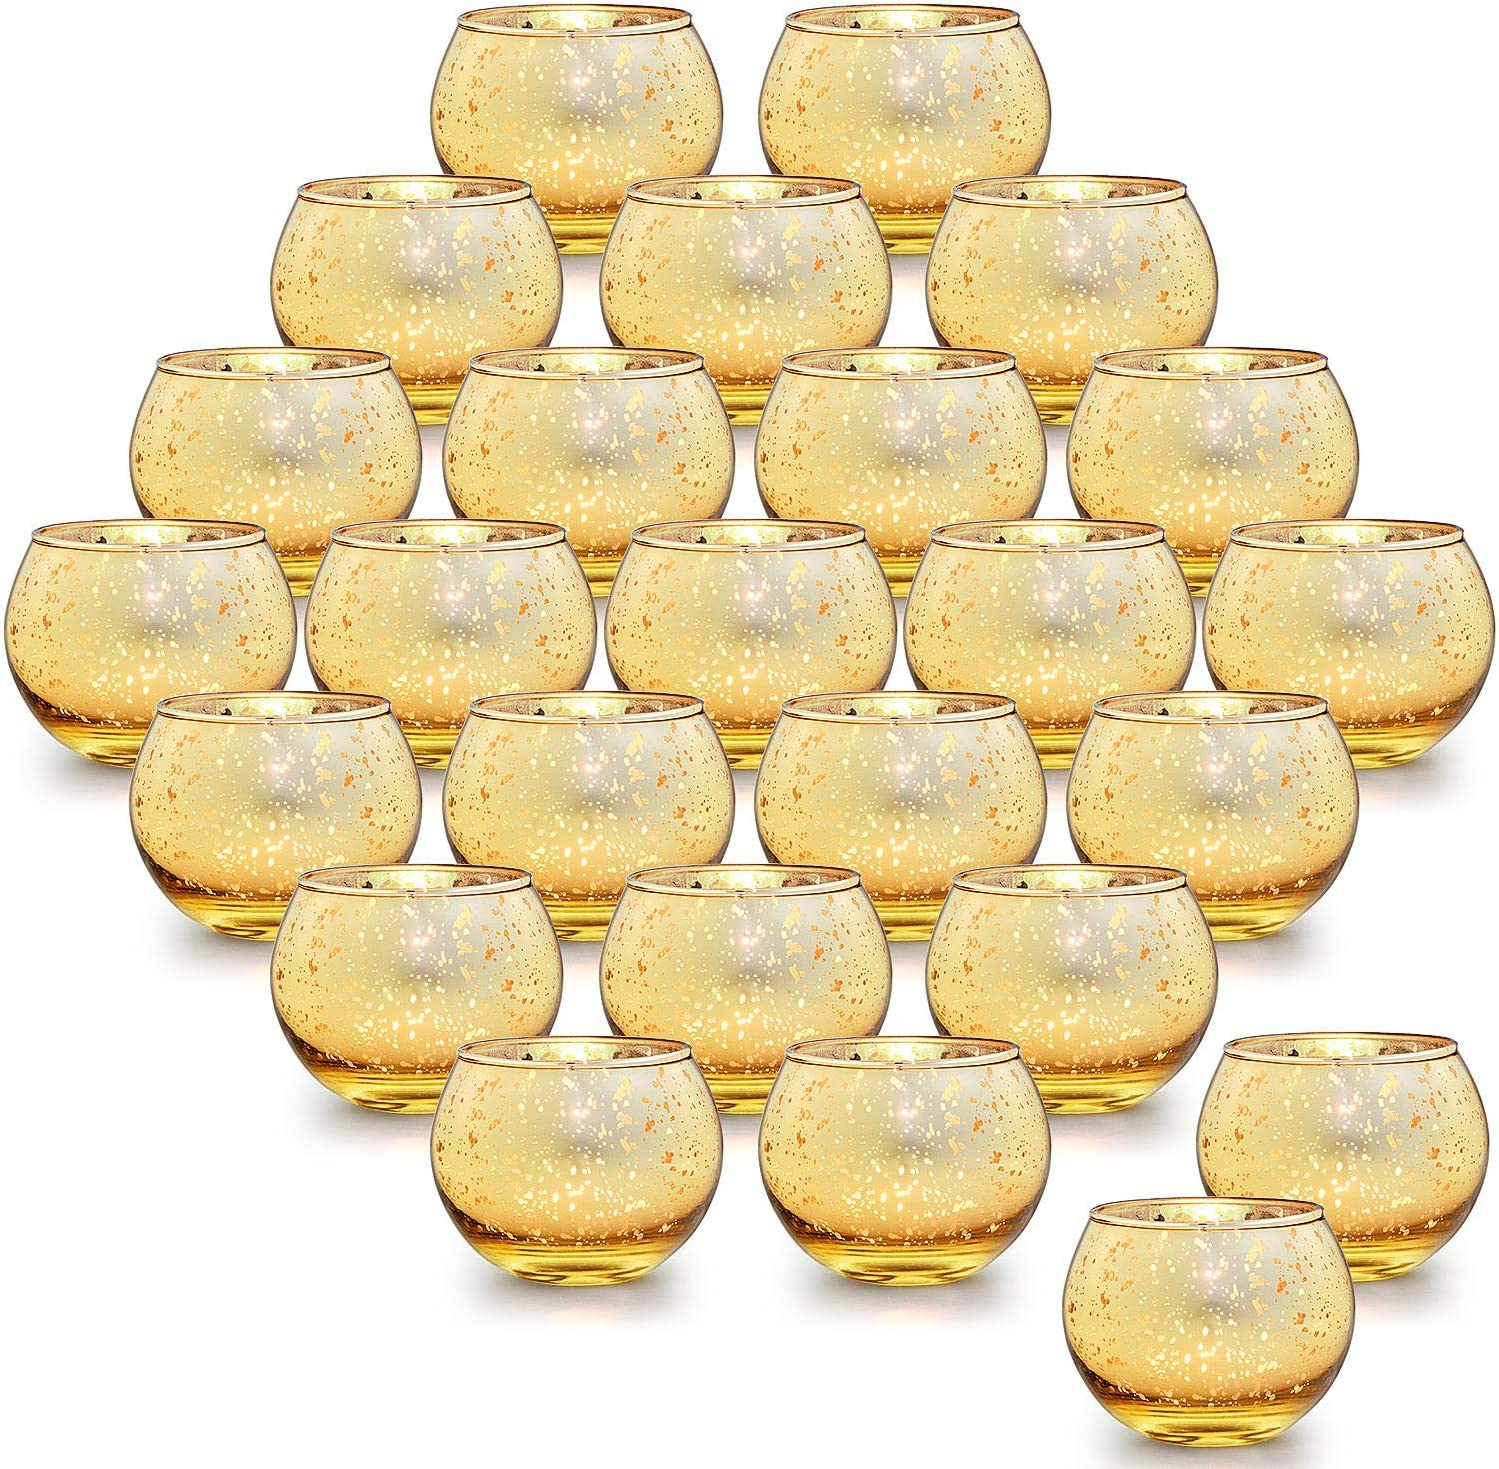 LETINE 36pcs Gold Votive Candle Holders for Table - Round Tealight Candle Holder Bulk -Ideal Mercury Glass Votives Centerpieces for Wedding Table Decorations, Parties & Home Decor